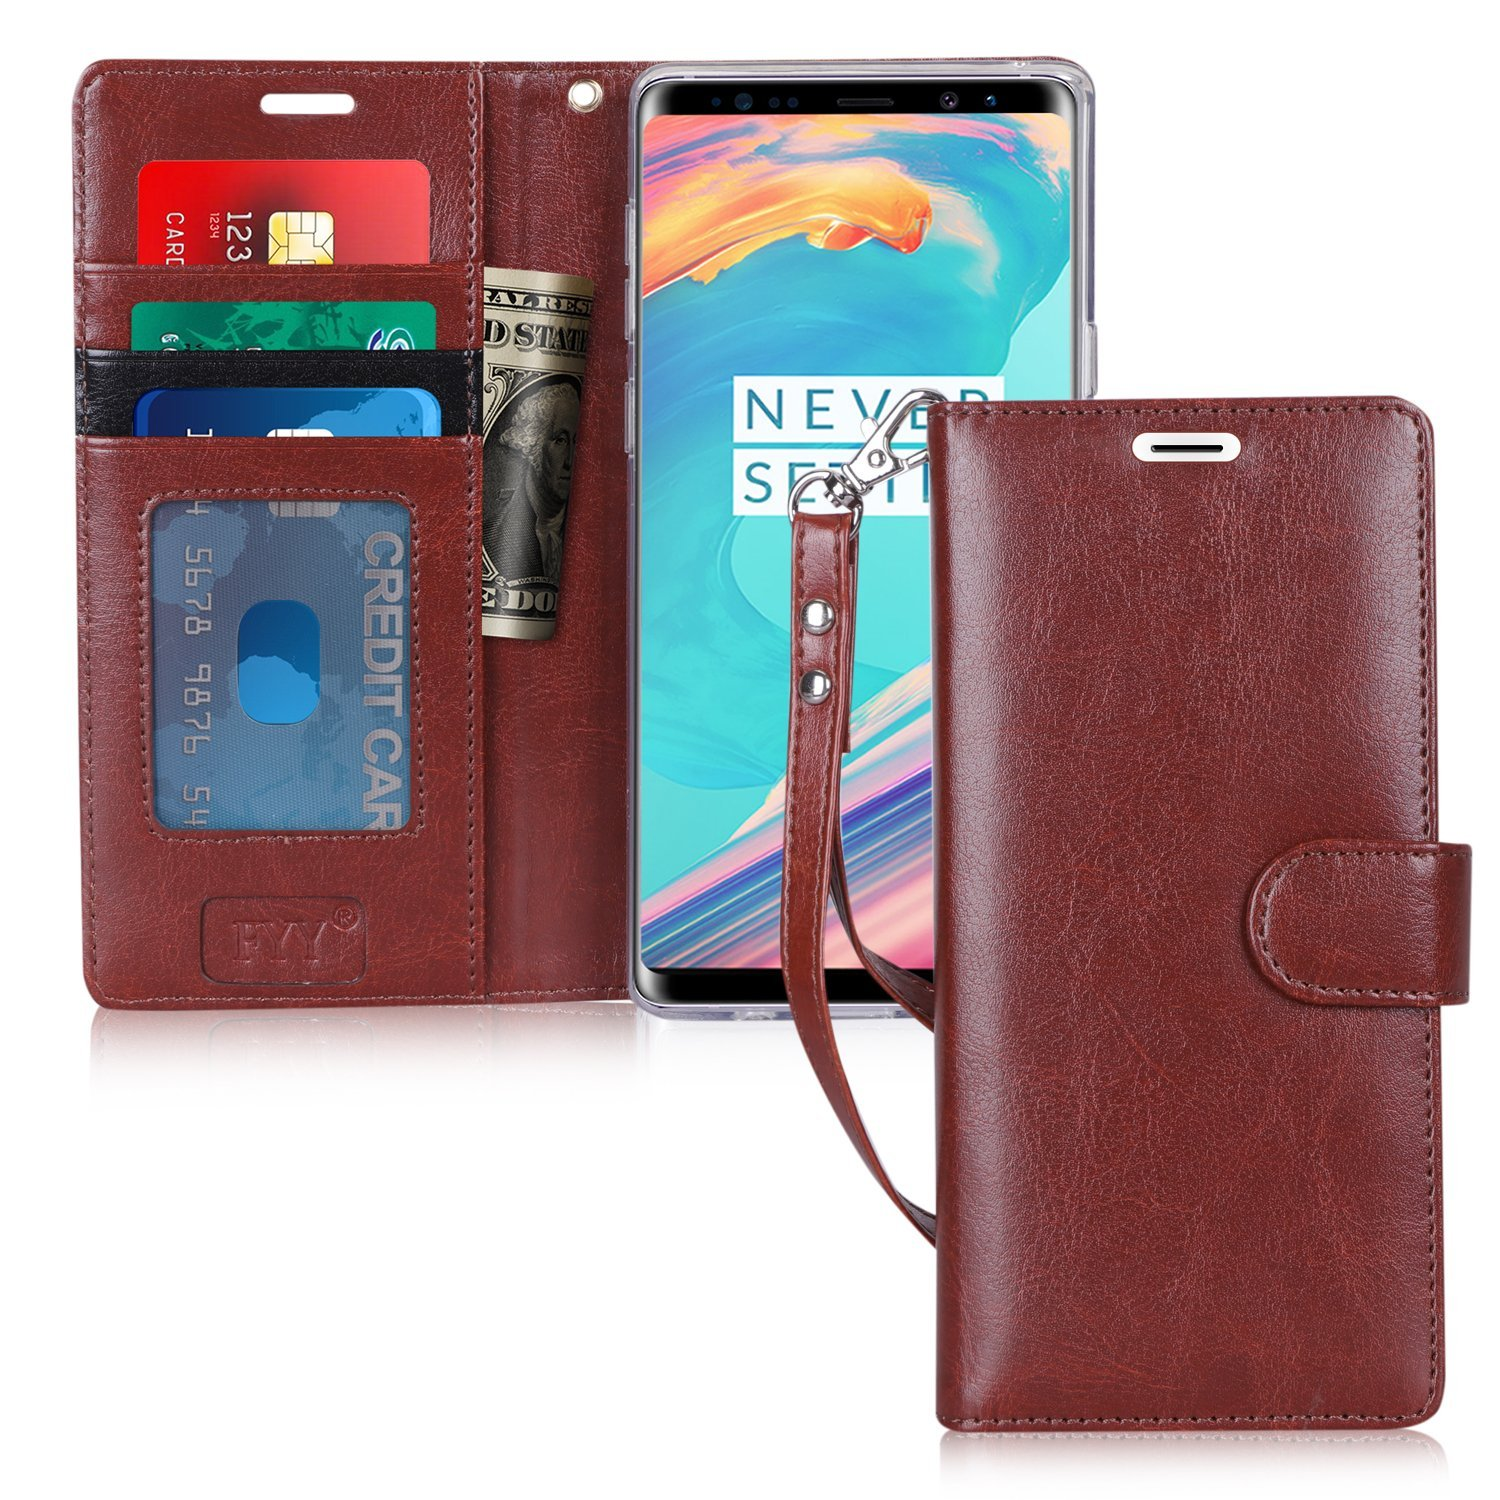 FYY Case for Samsung Galaxy Note 9, Handmade Flip Folio Note 9 Case Wallet [Kickstand Feature] With ID and Credit Card Protector for Samsung Galaxy Note 9 (2018) Dark Brown